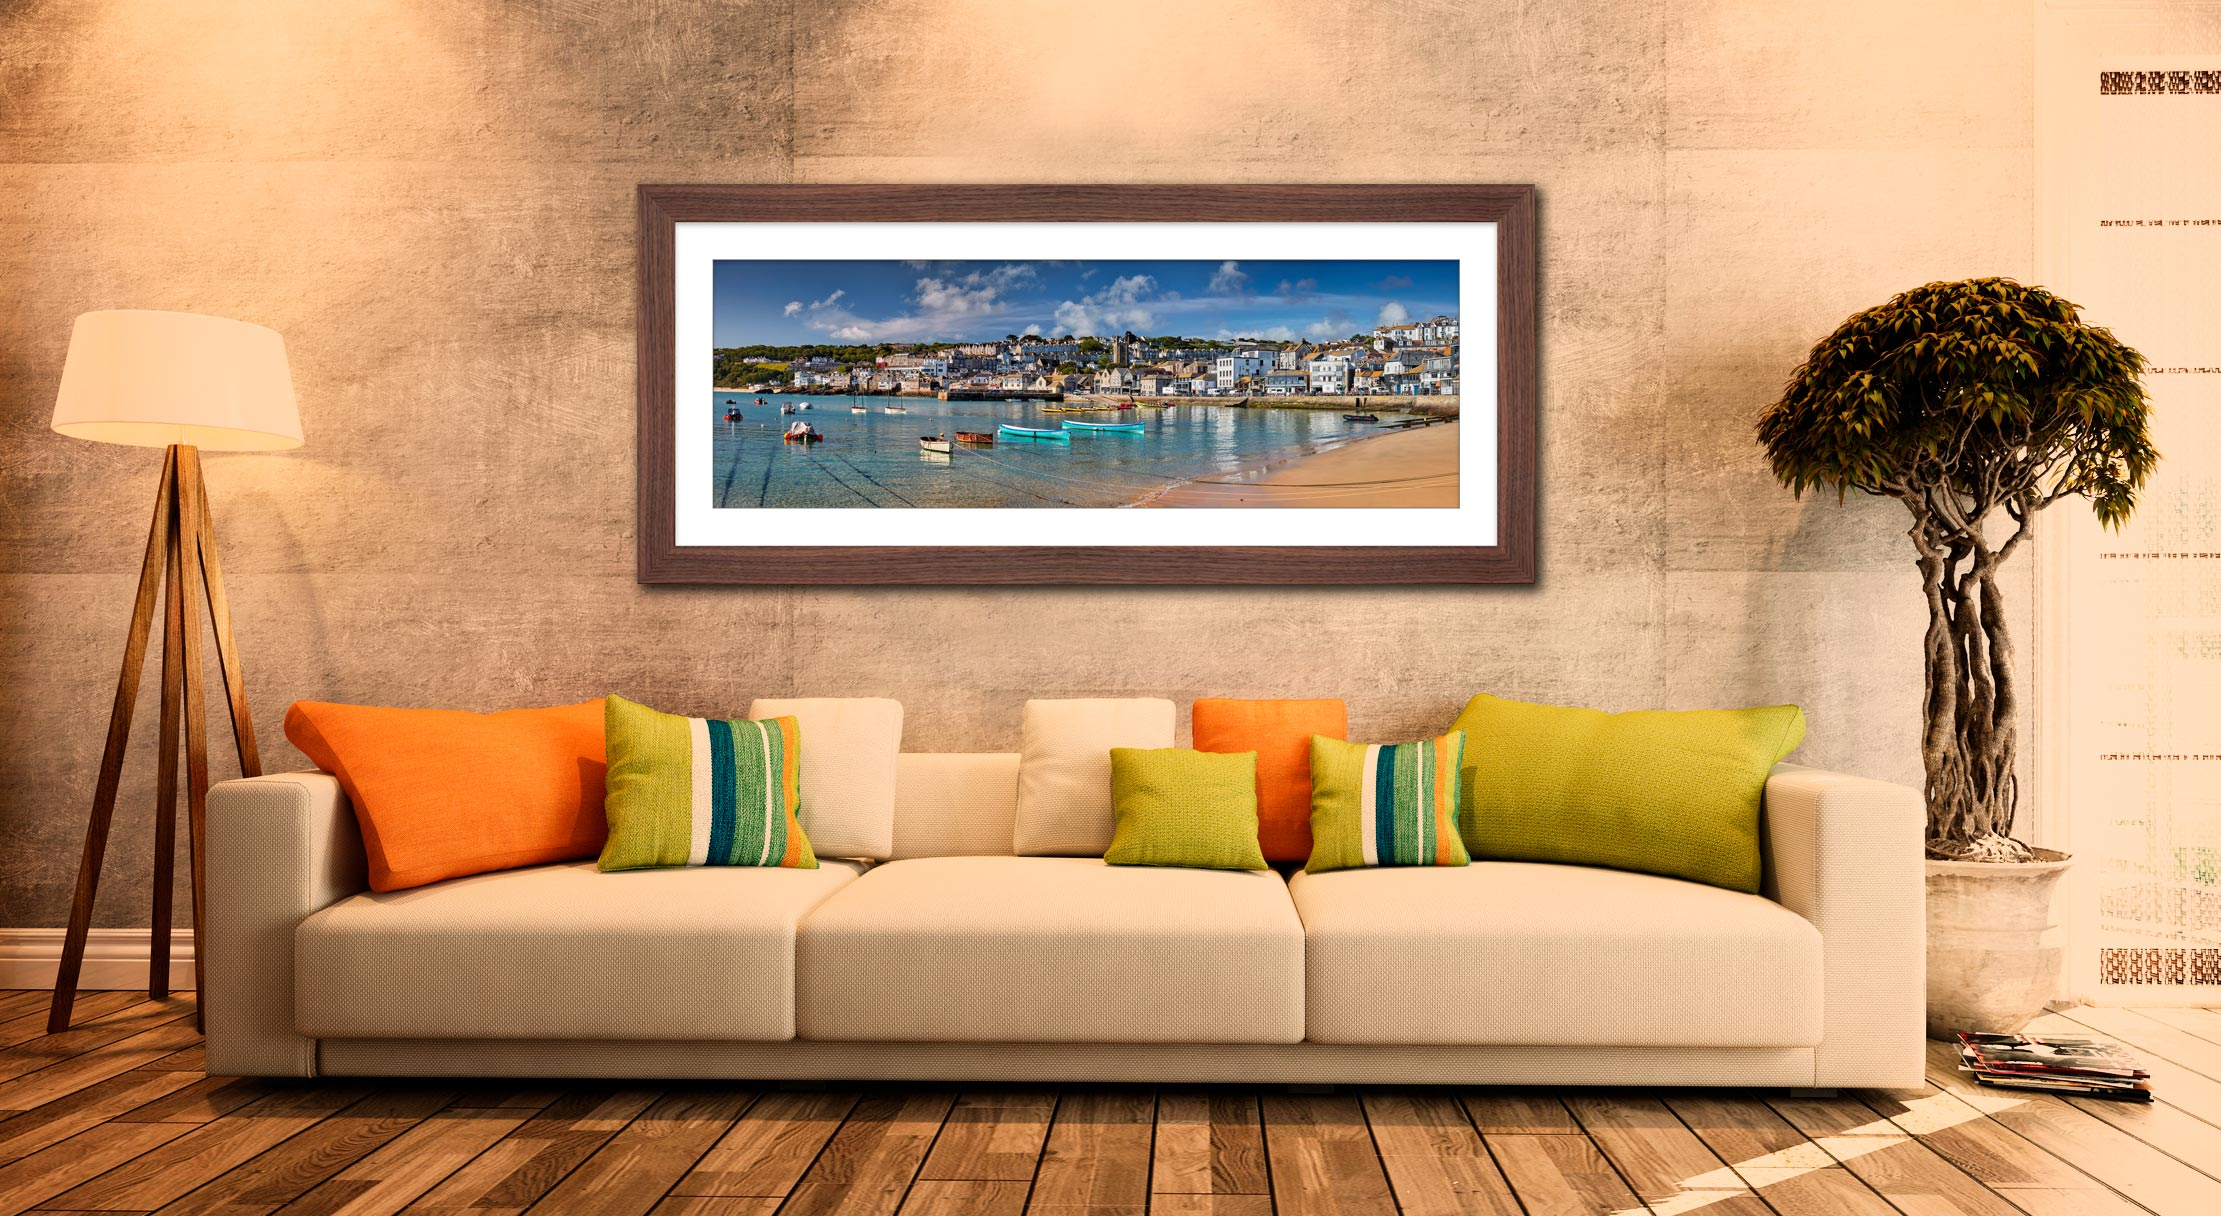 St Ives Harbour Silver Water - Framed Print with Mount on Wall